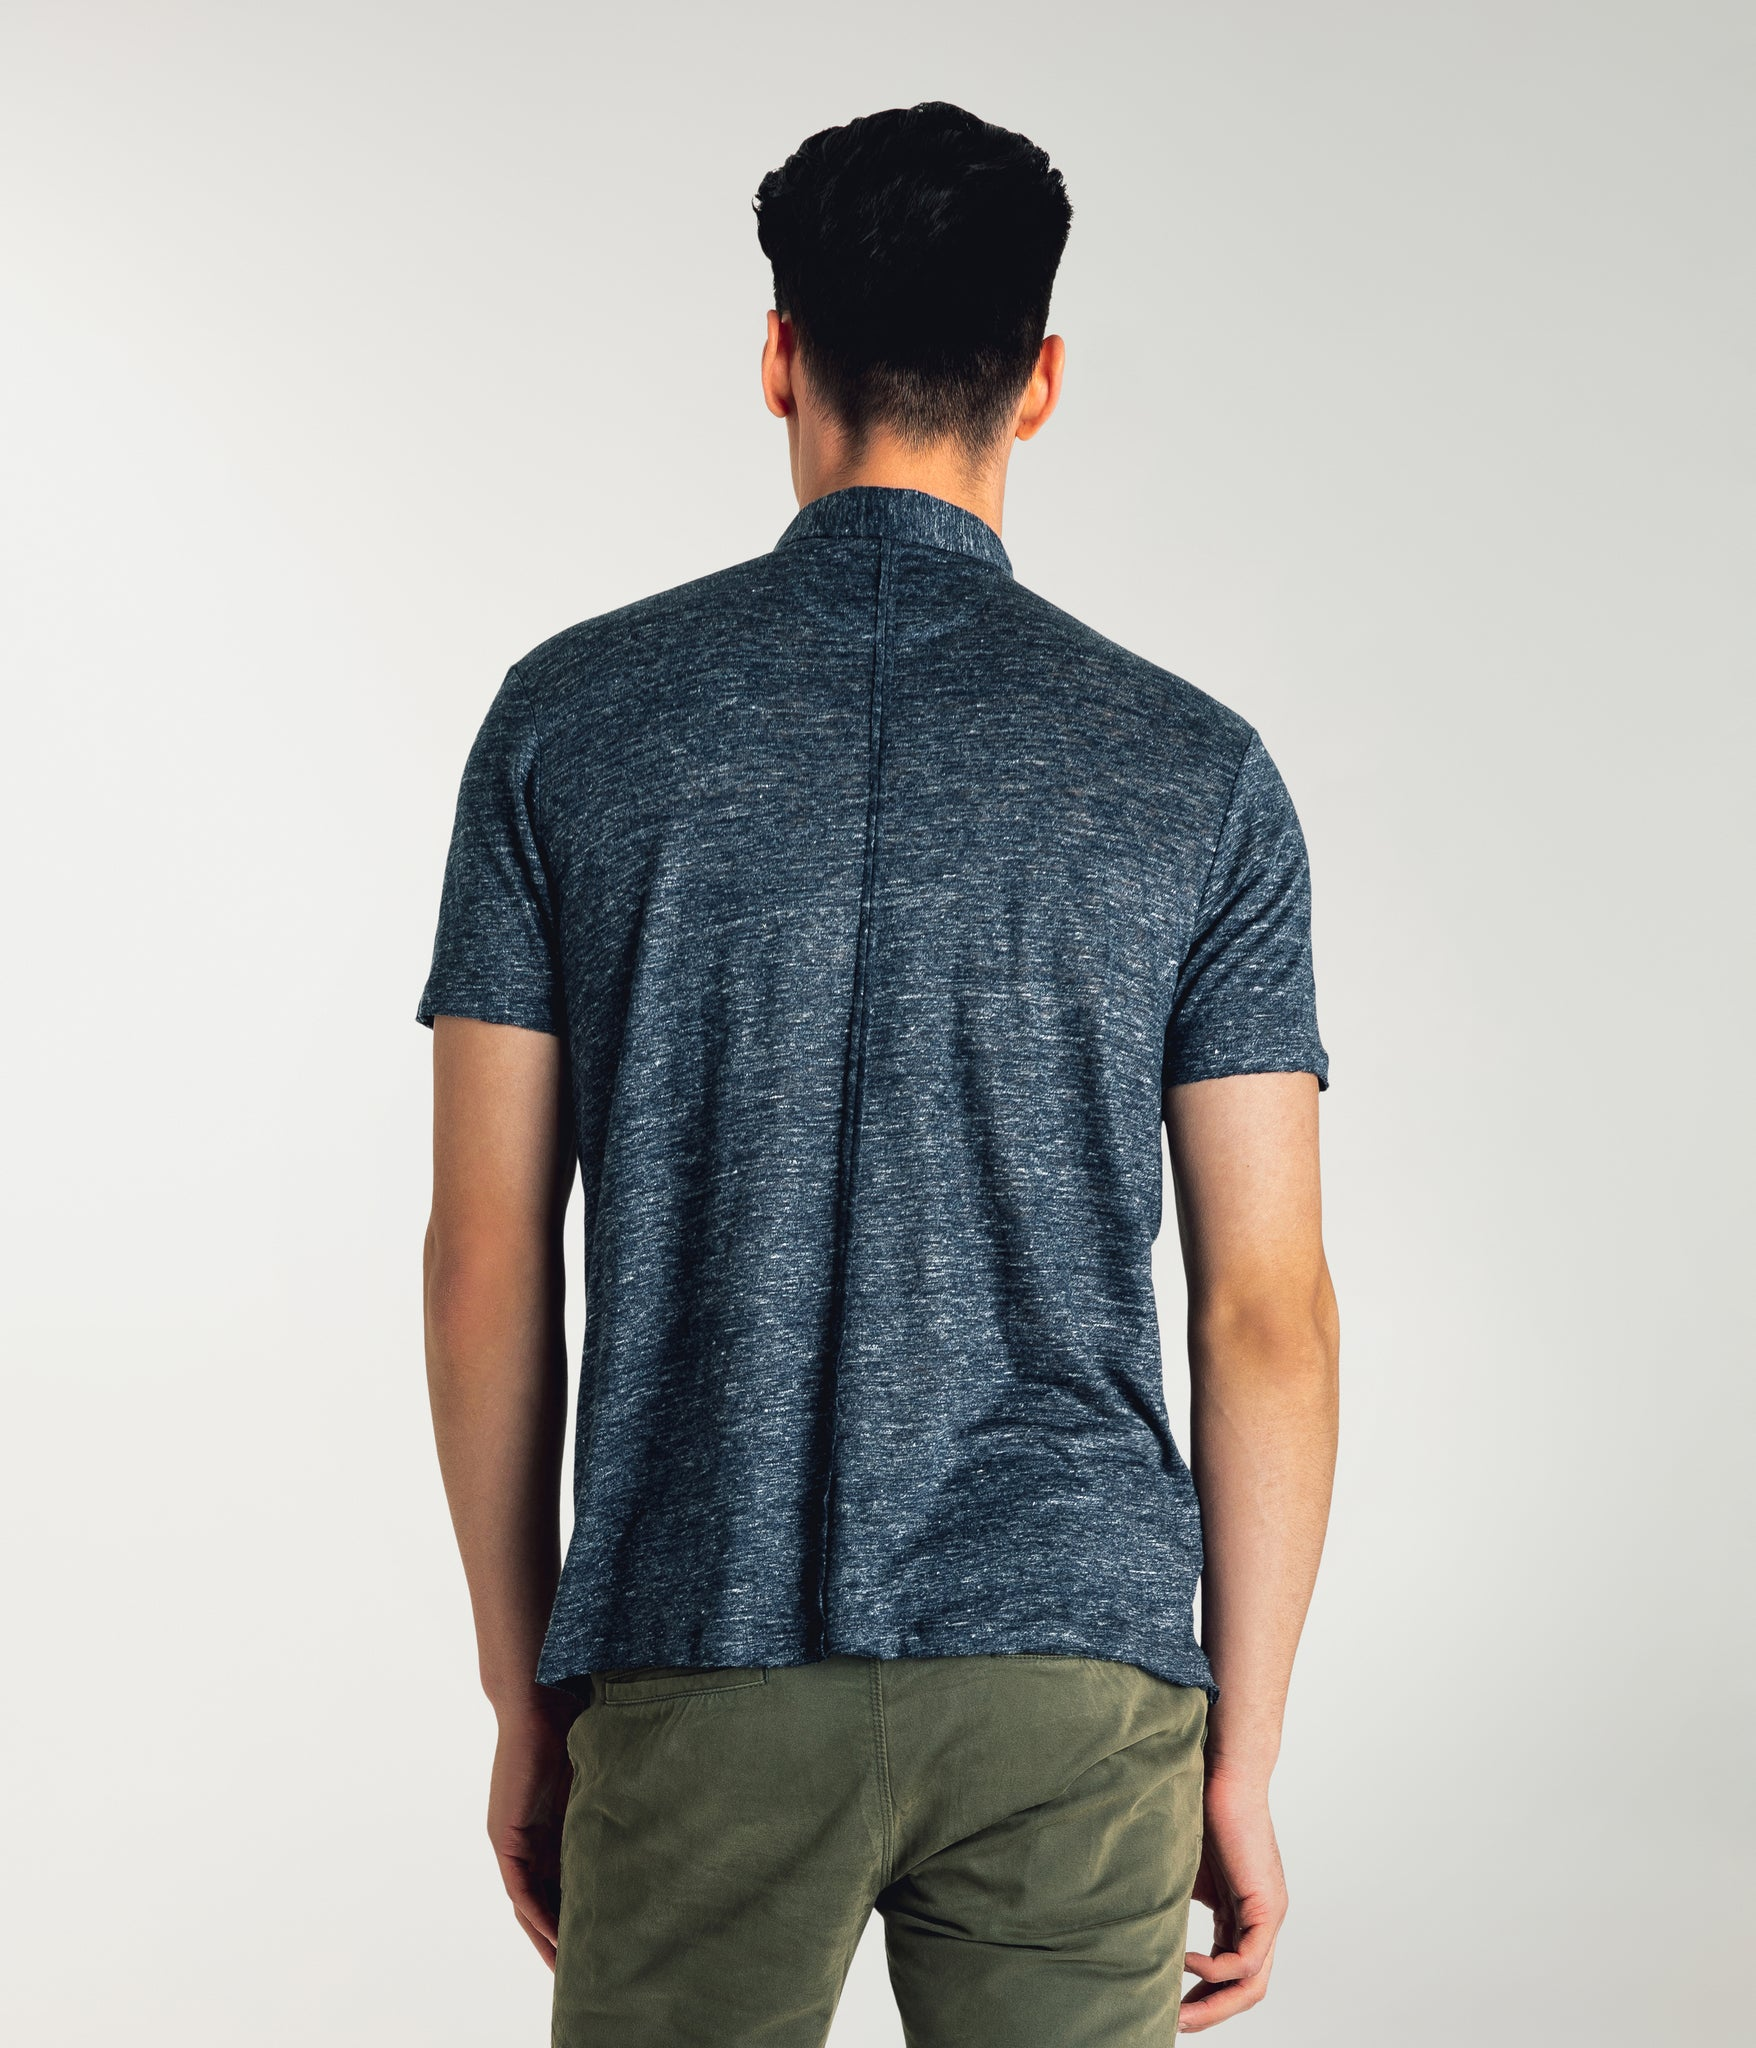 Linen Heather Polo - Navy Heather